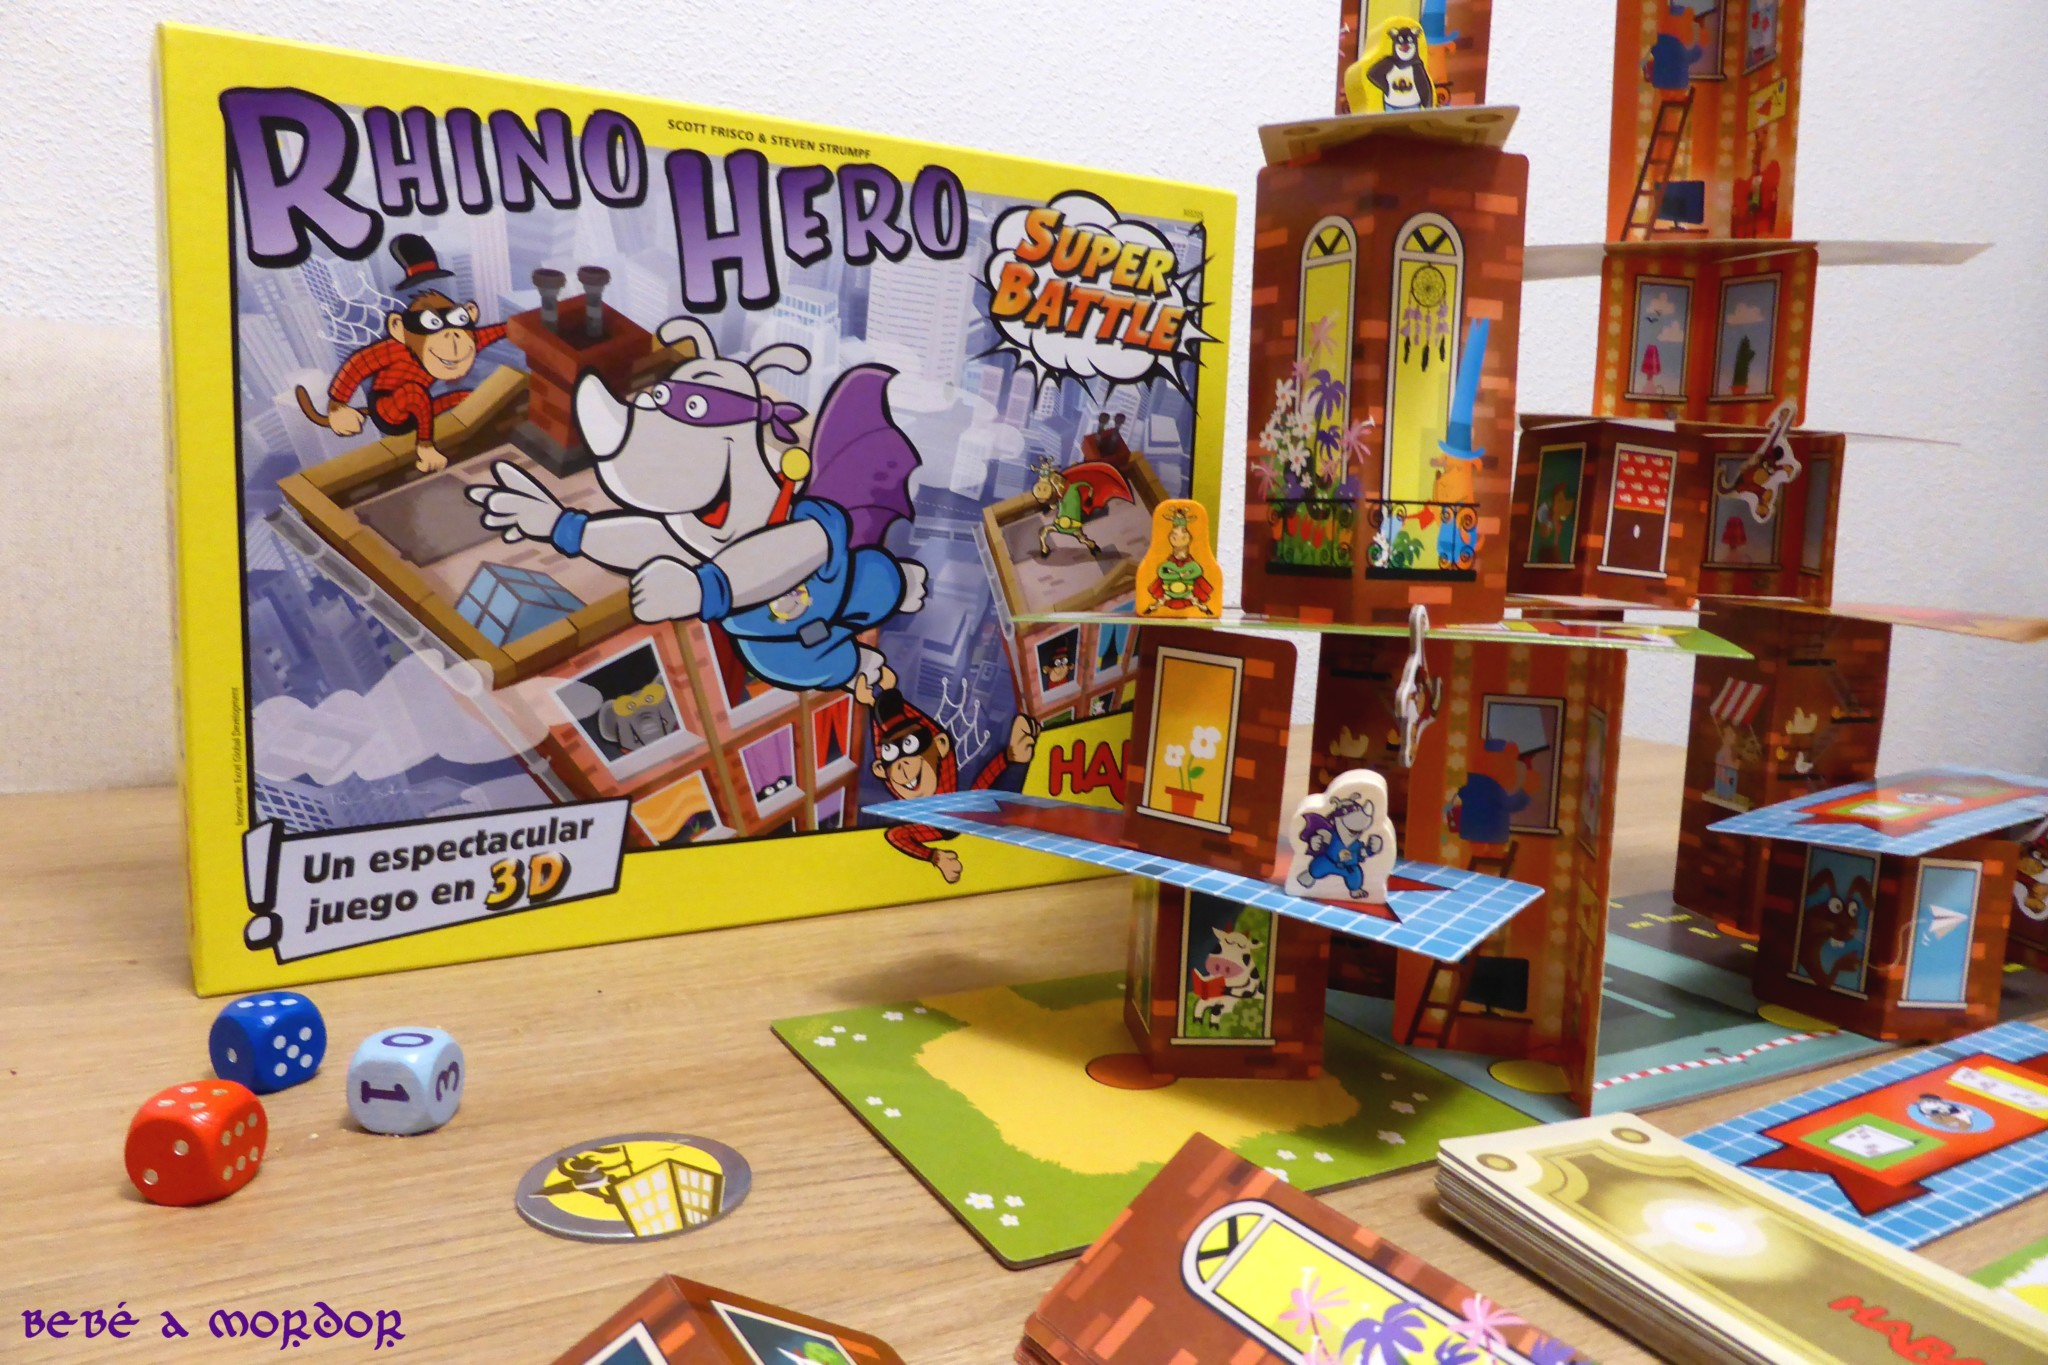 Rhino Hero Super Battle de Haba